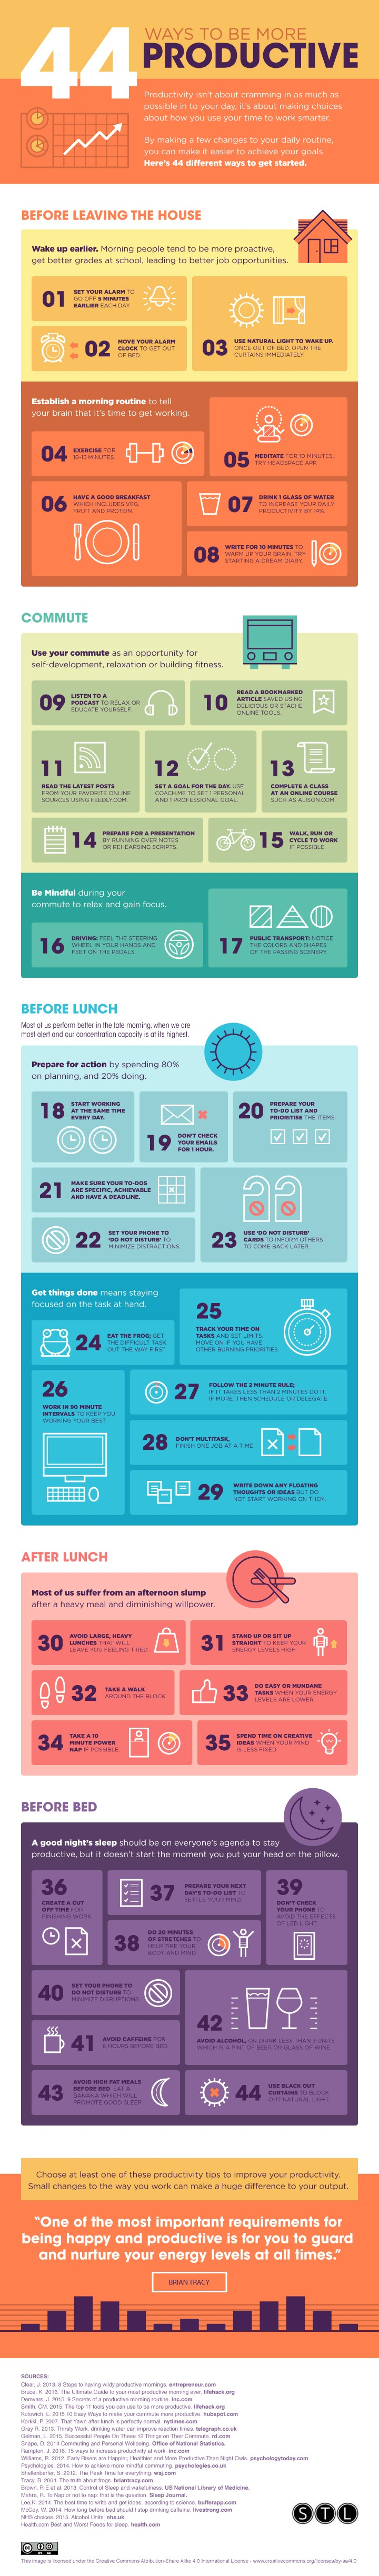 44-ways-to-be-more-productive